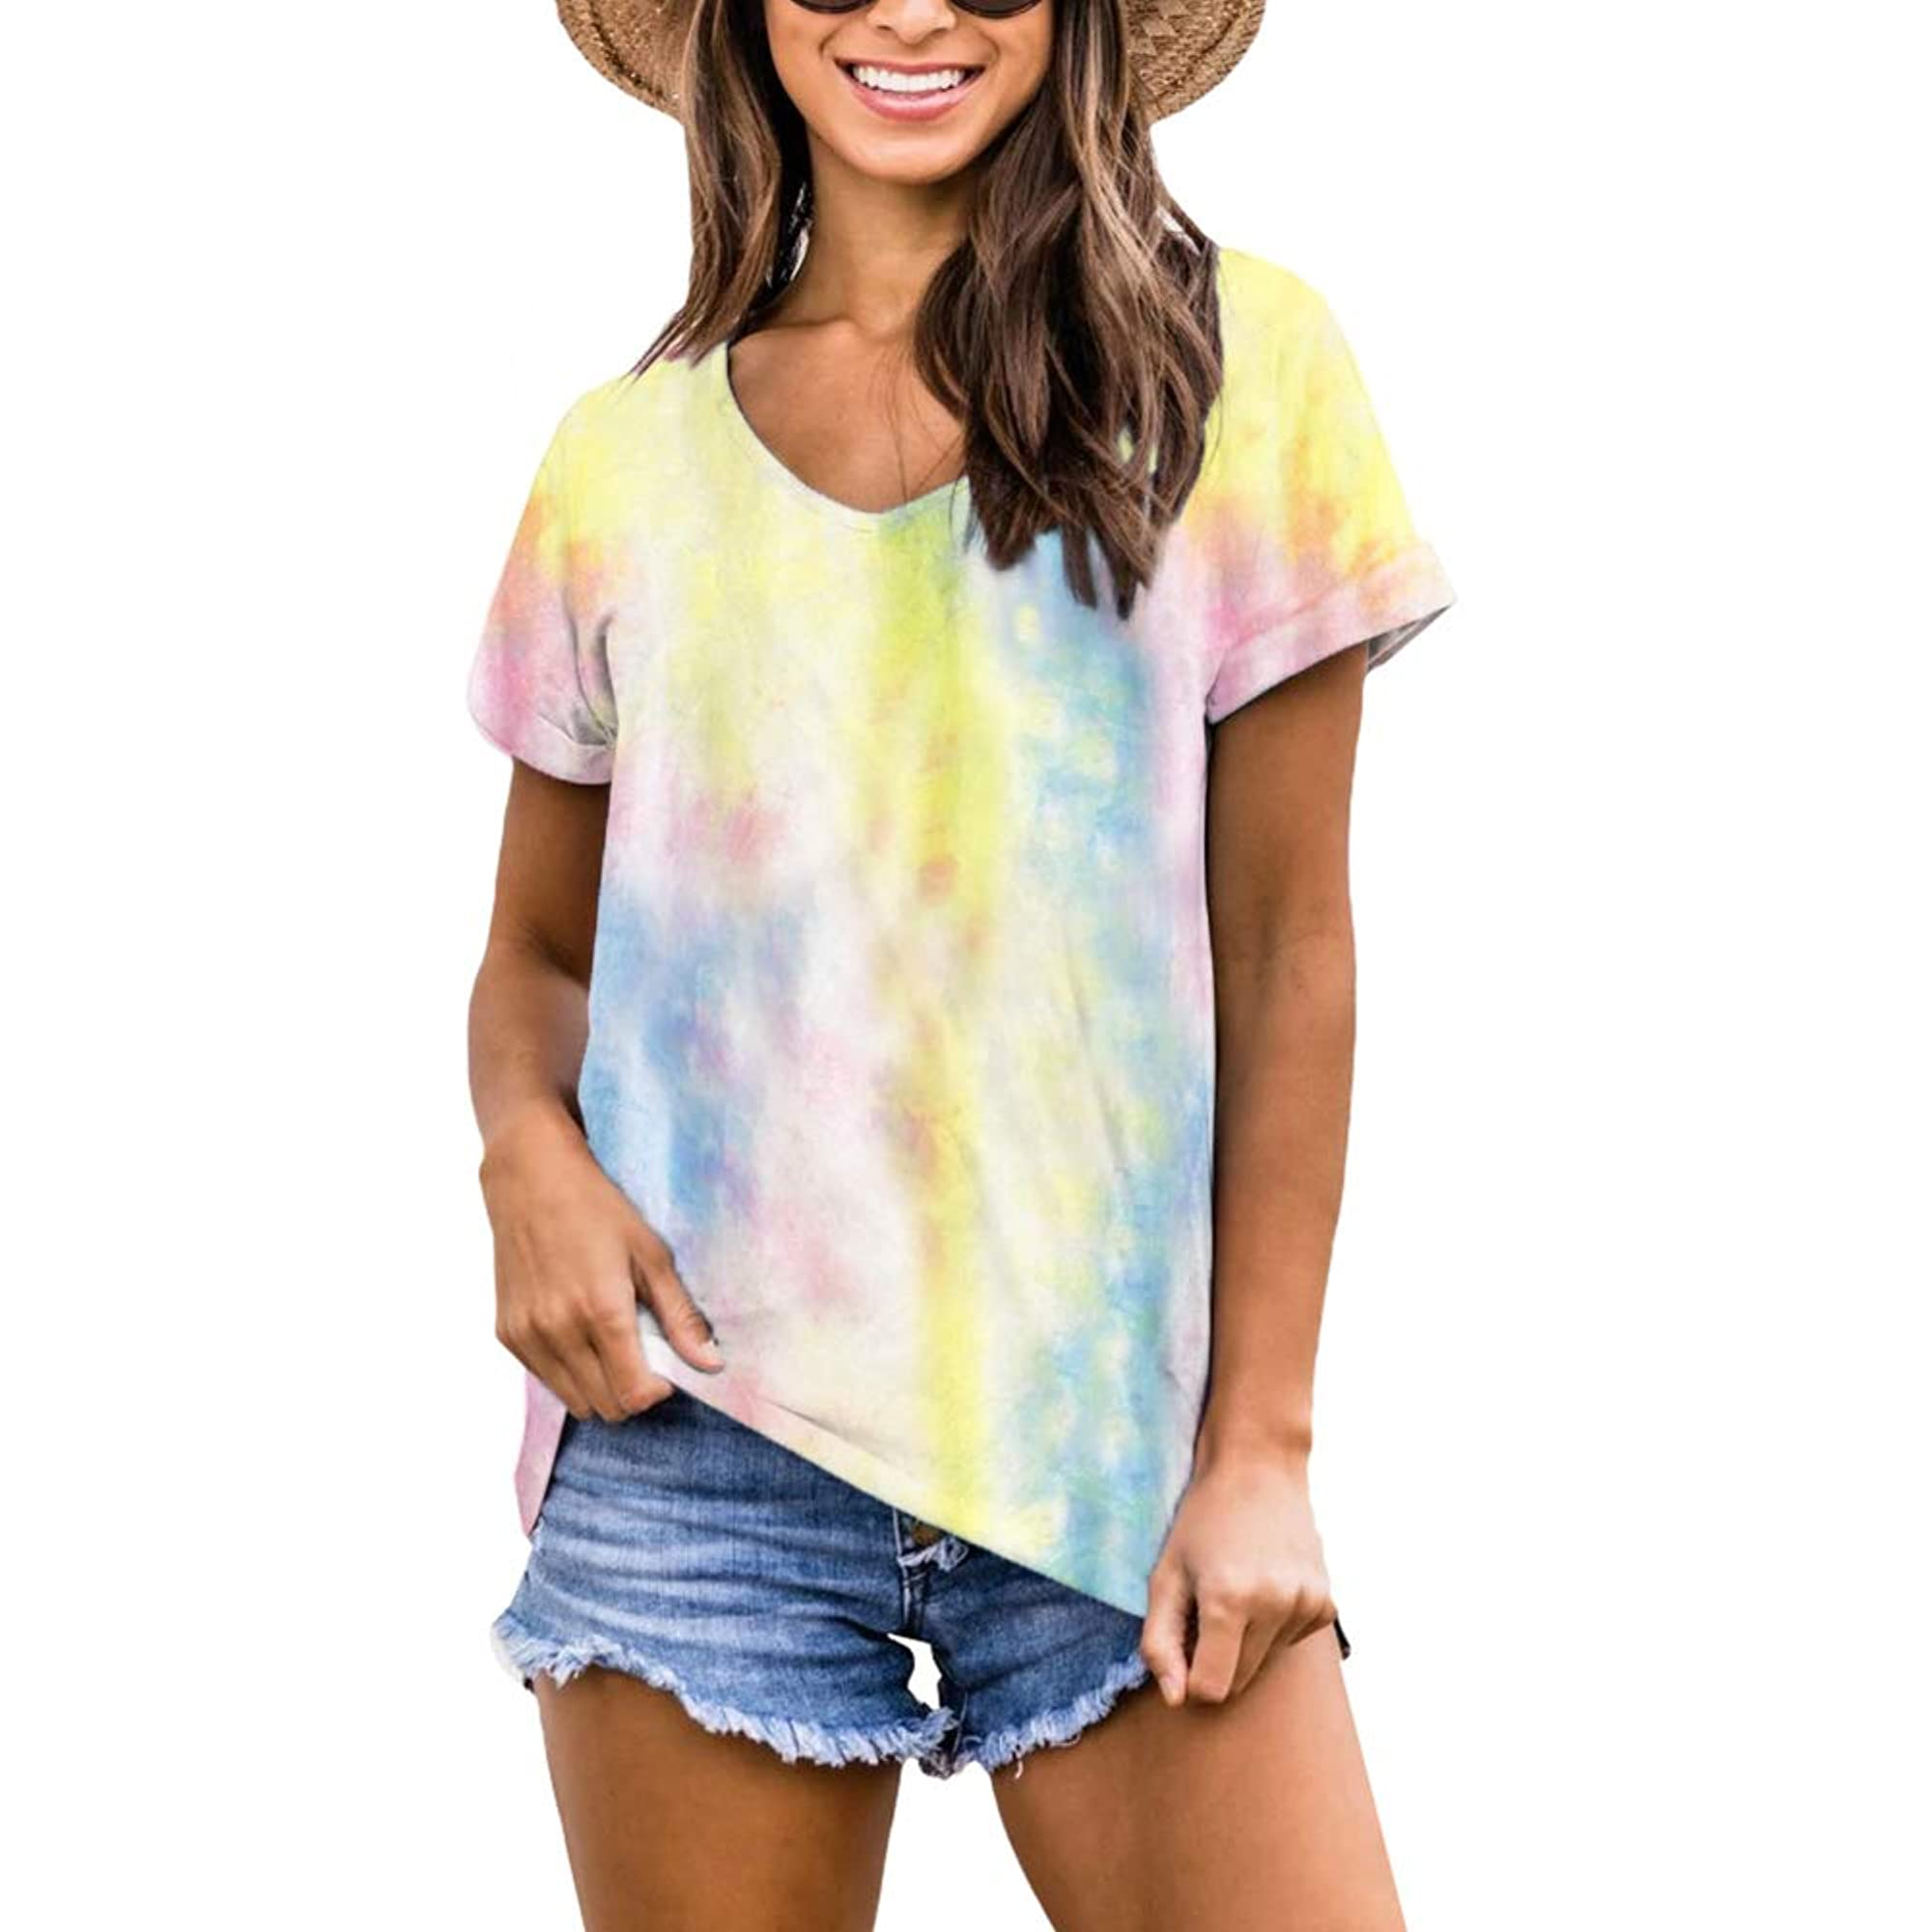 Short-Sleeve V-Neck Casual Tees For Women